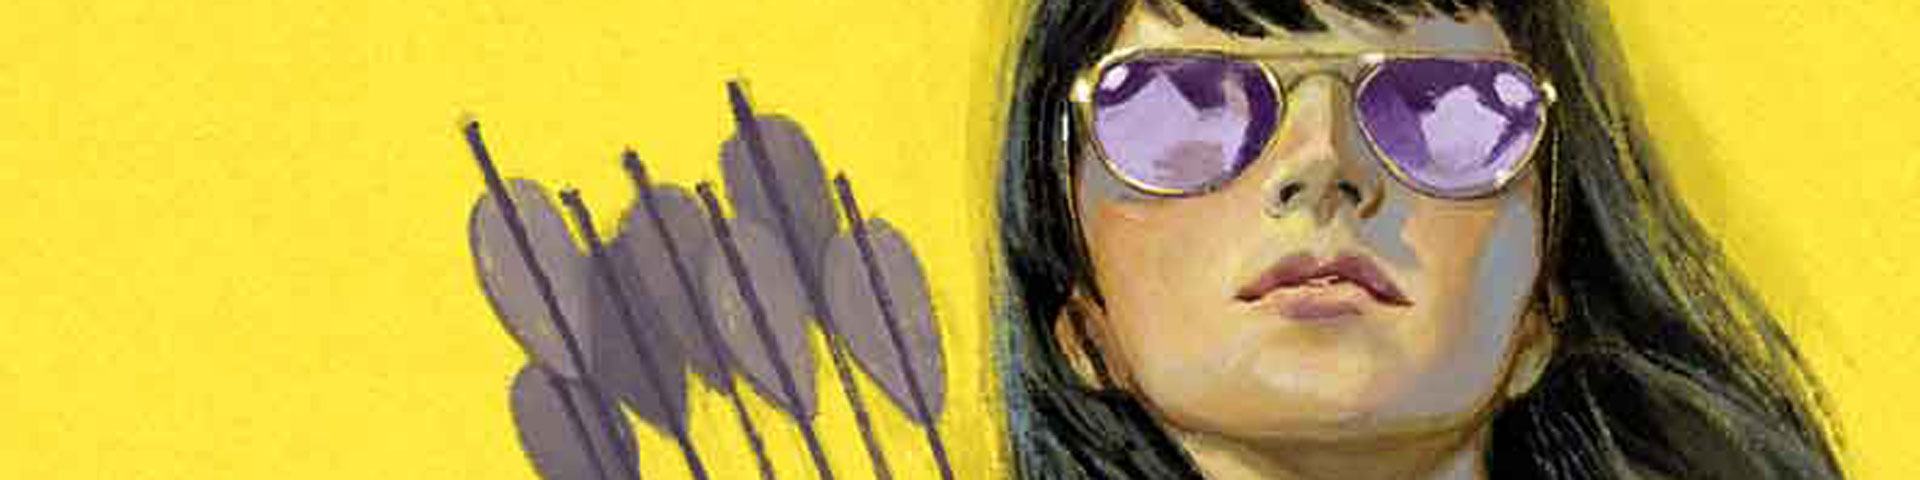 A close-up of Kate Bishop, the other Hawkeye. She's wearing purple sunglasses and the fins of her signature arrows appear to her left.